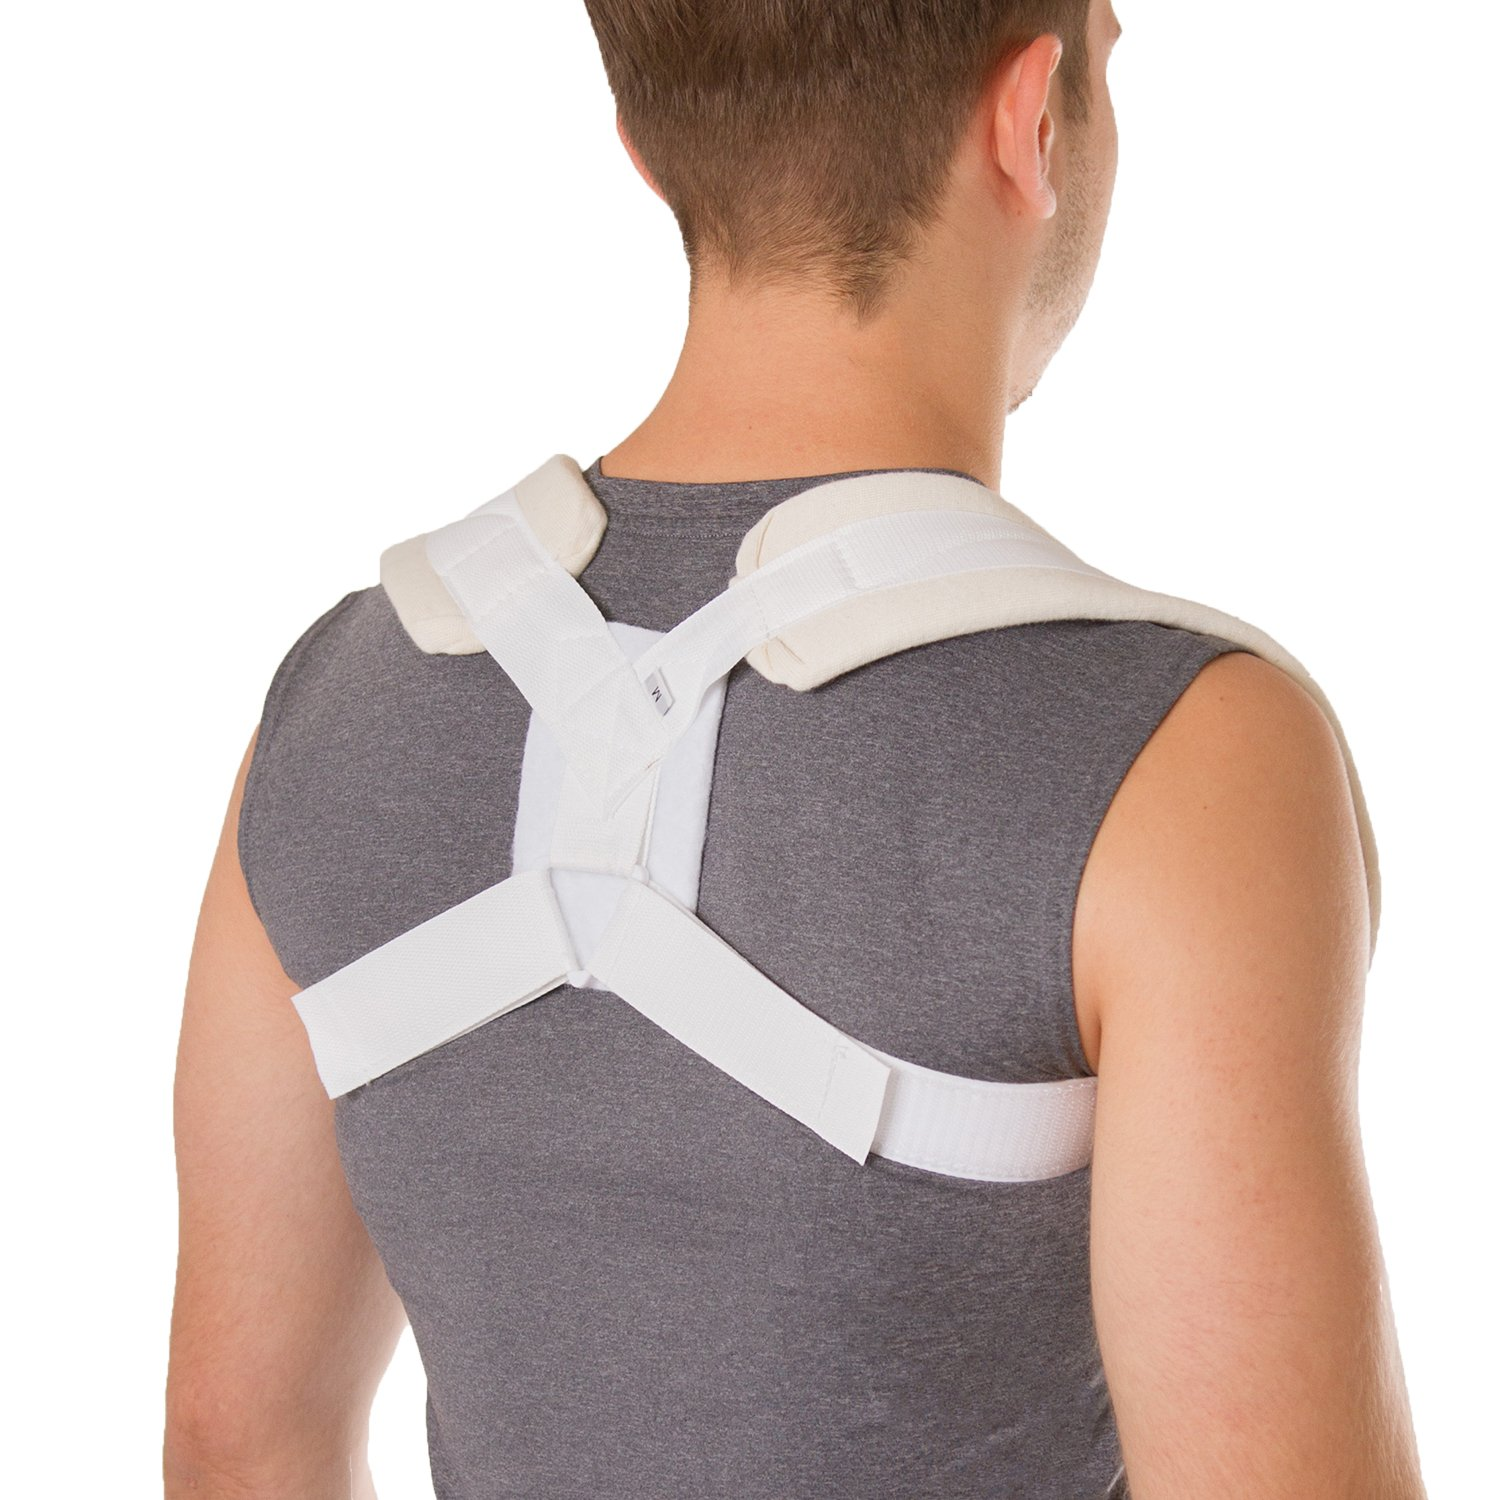 BraceAbility Figure 8 Clavicle Brace & Posture Corrector | Broken Collarbone Sling for Injuries & Fractures, Shoulder Support Strap for Upper Back Straightening (XL) by BraceAbility